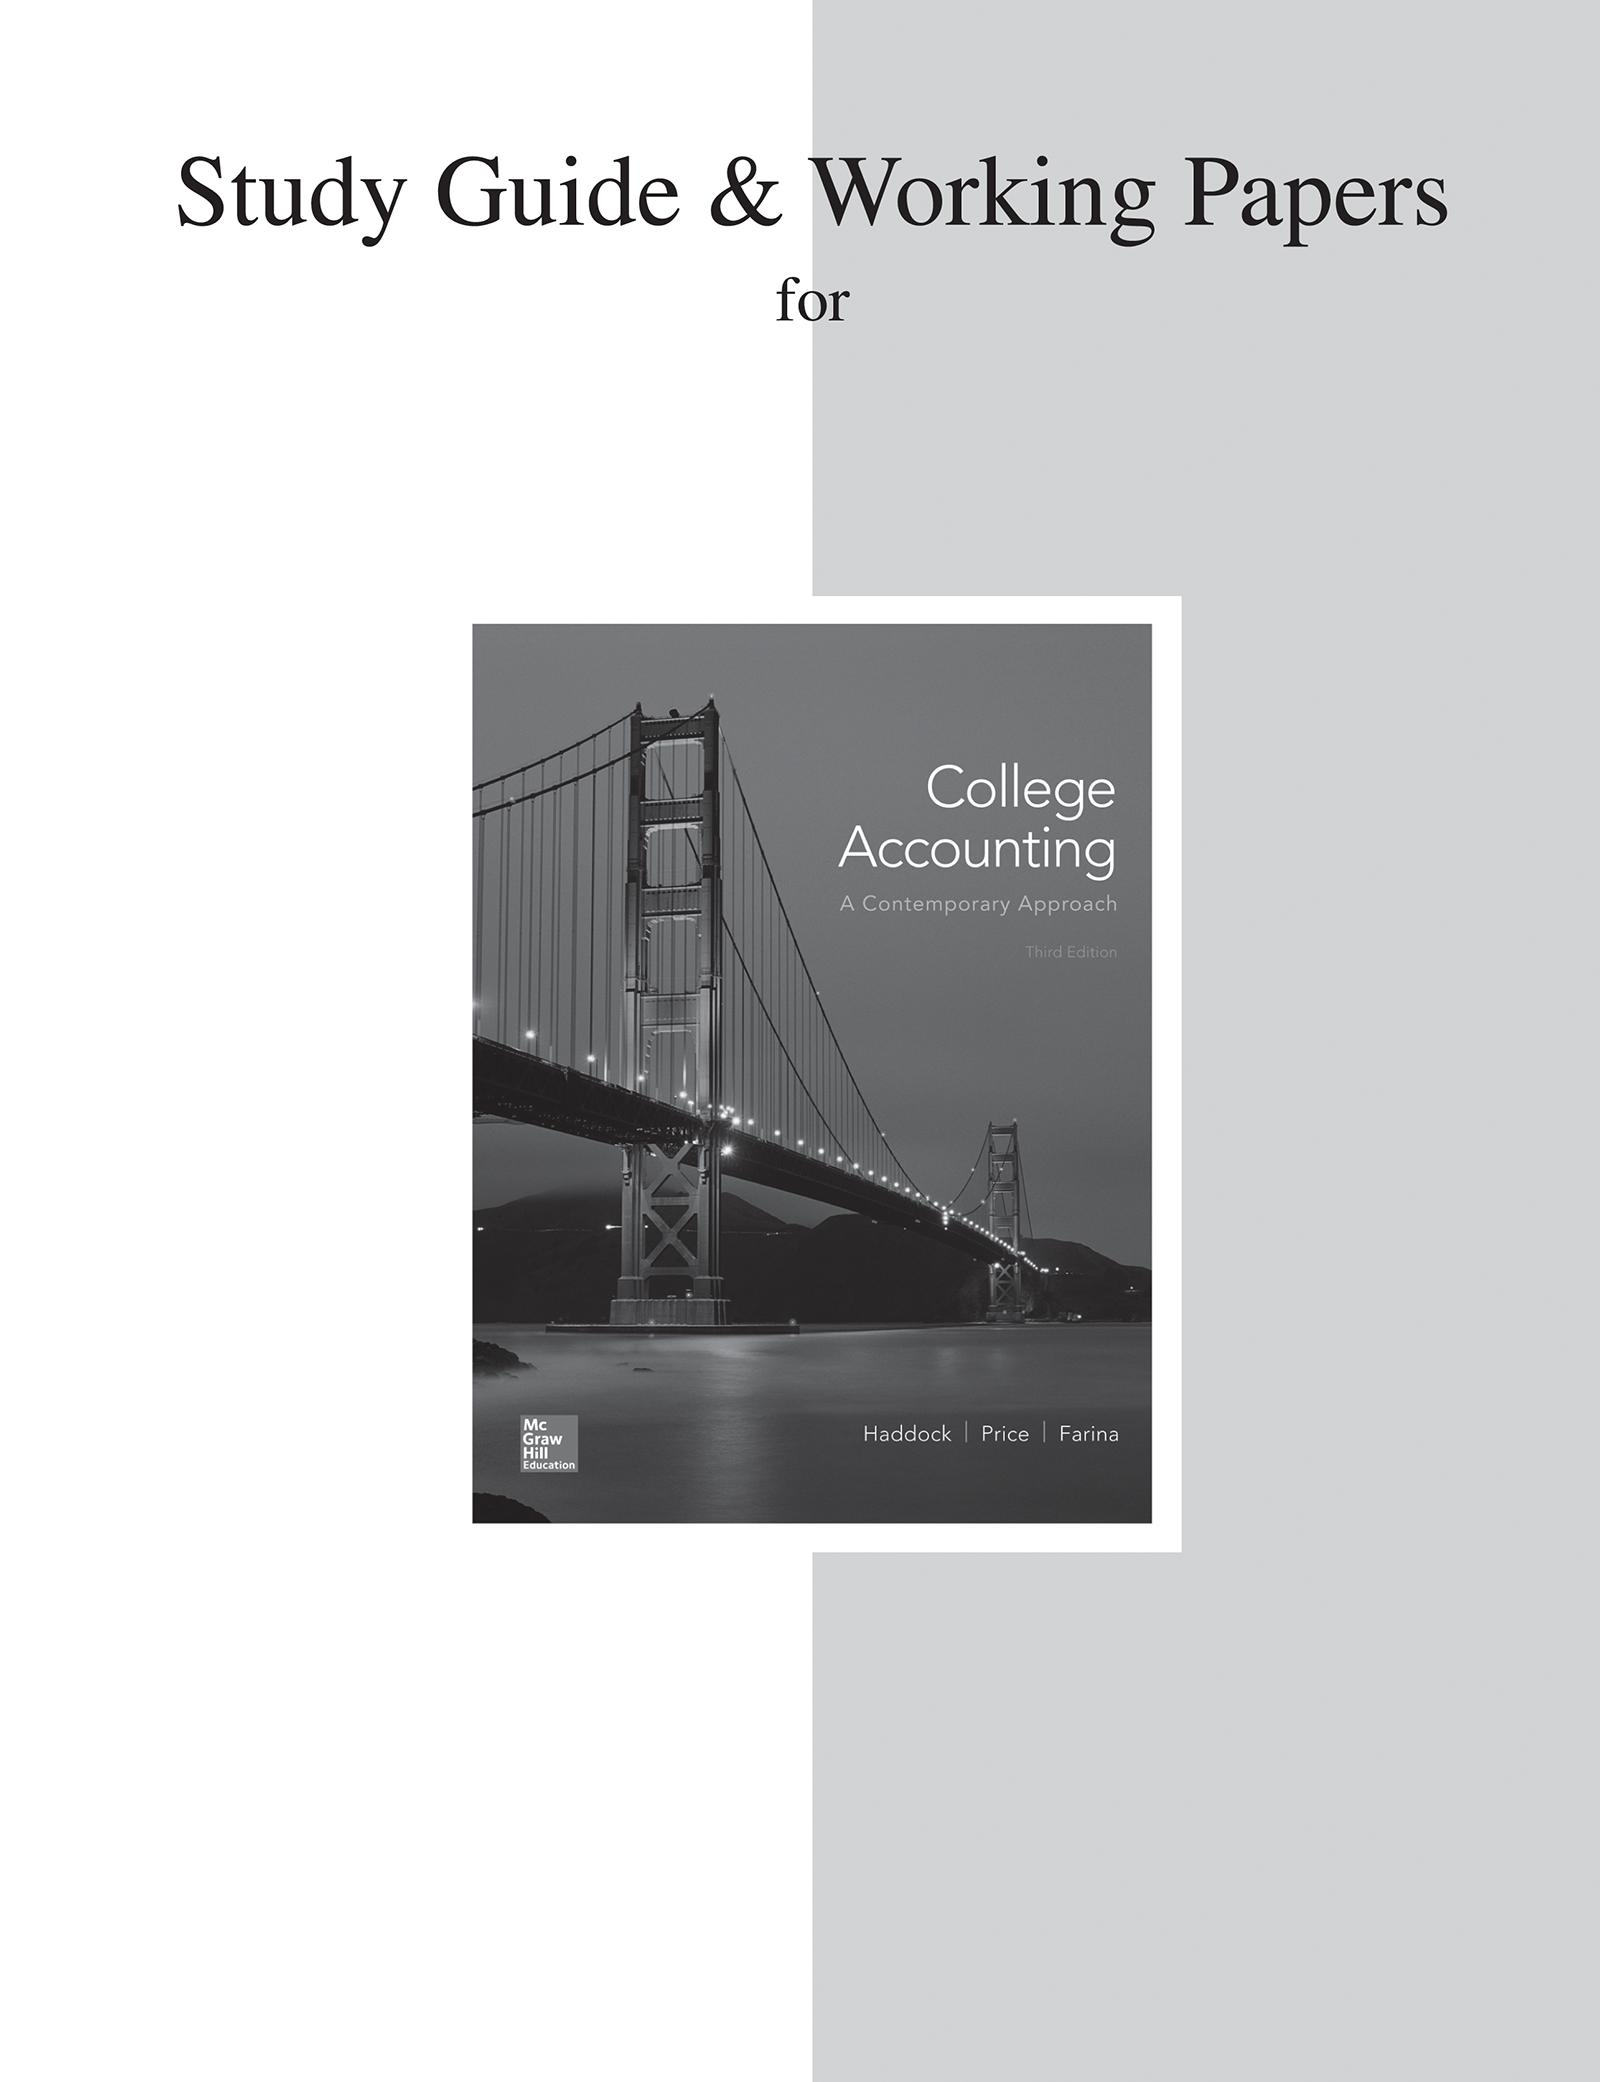 Study Guide and Working Papers for College Accounting (a Contemporary  Approach) - Walmart.com